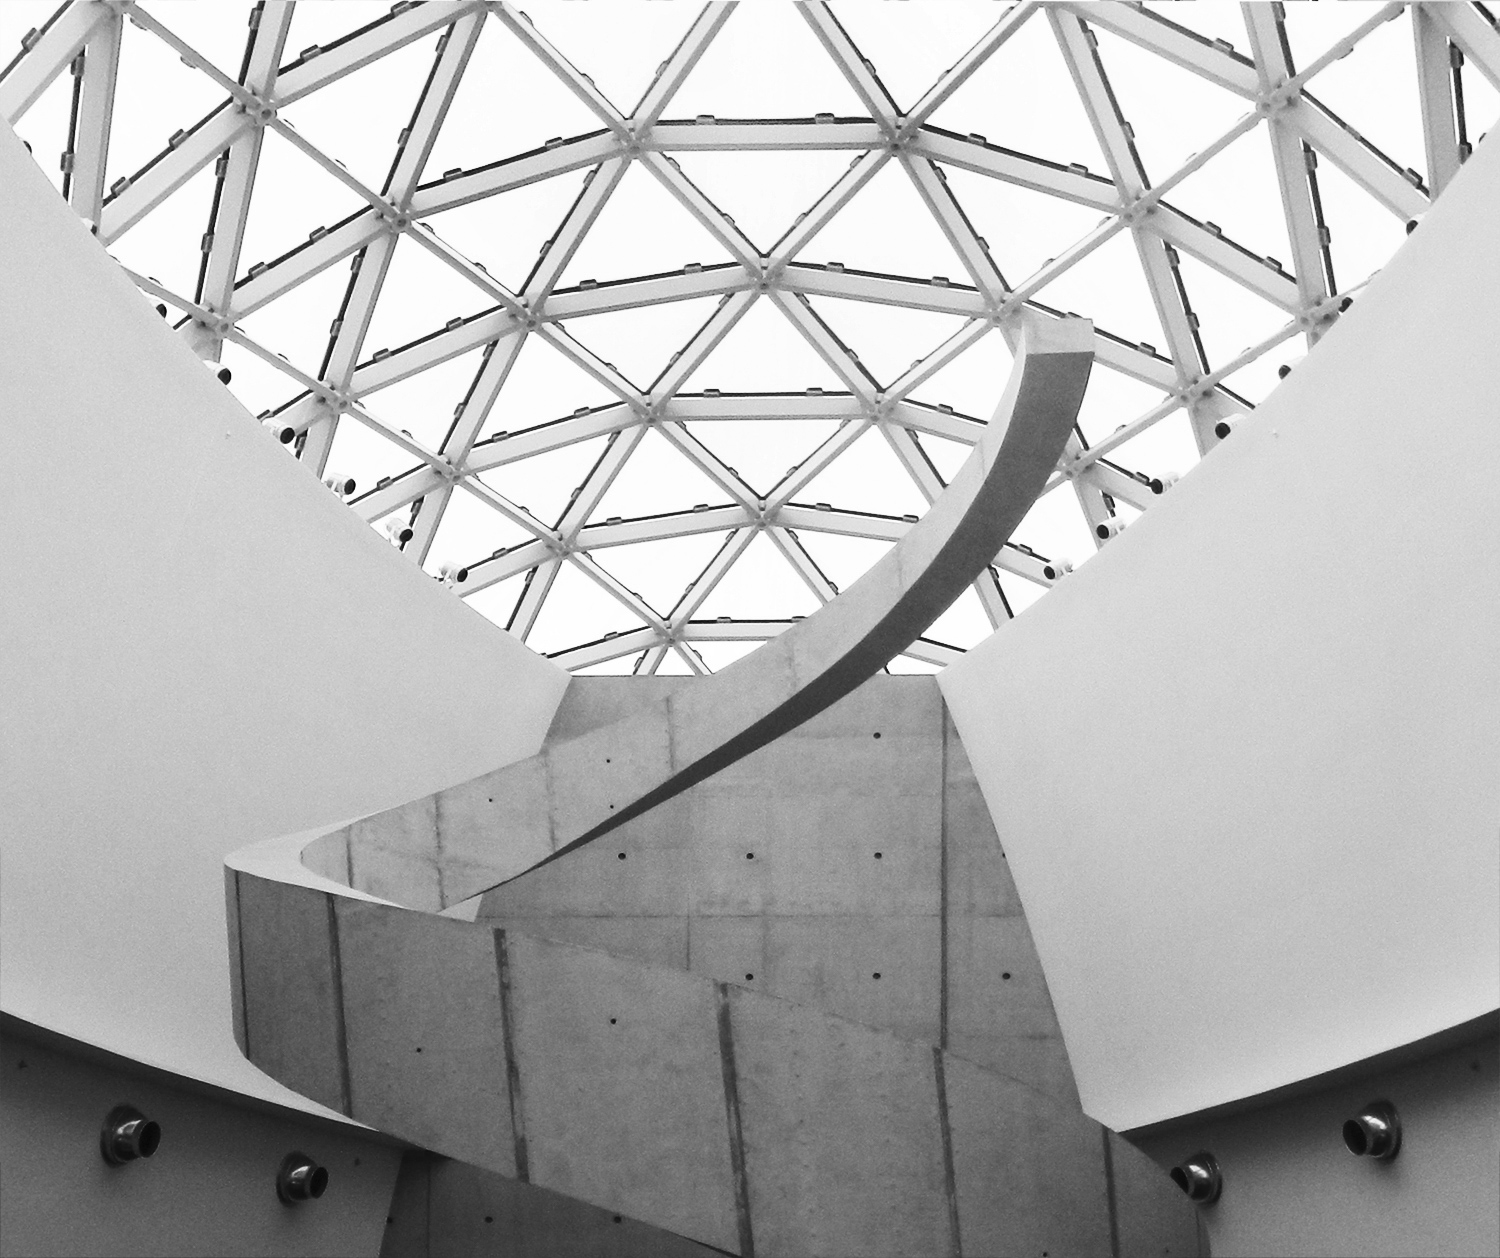 Architectural_James_Hoare_Photography-16.jpg